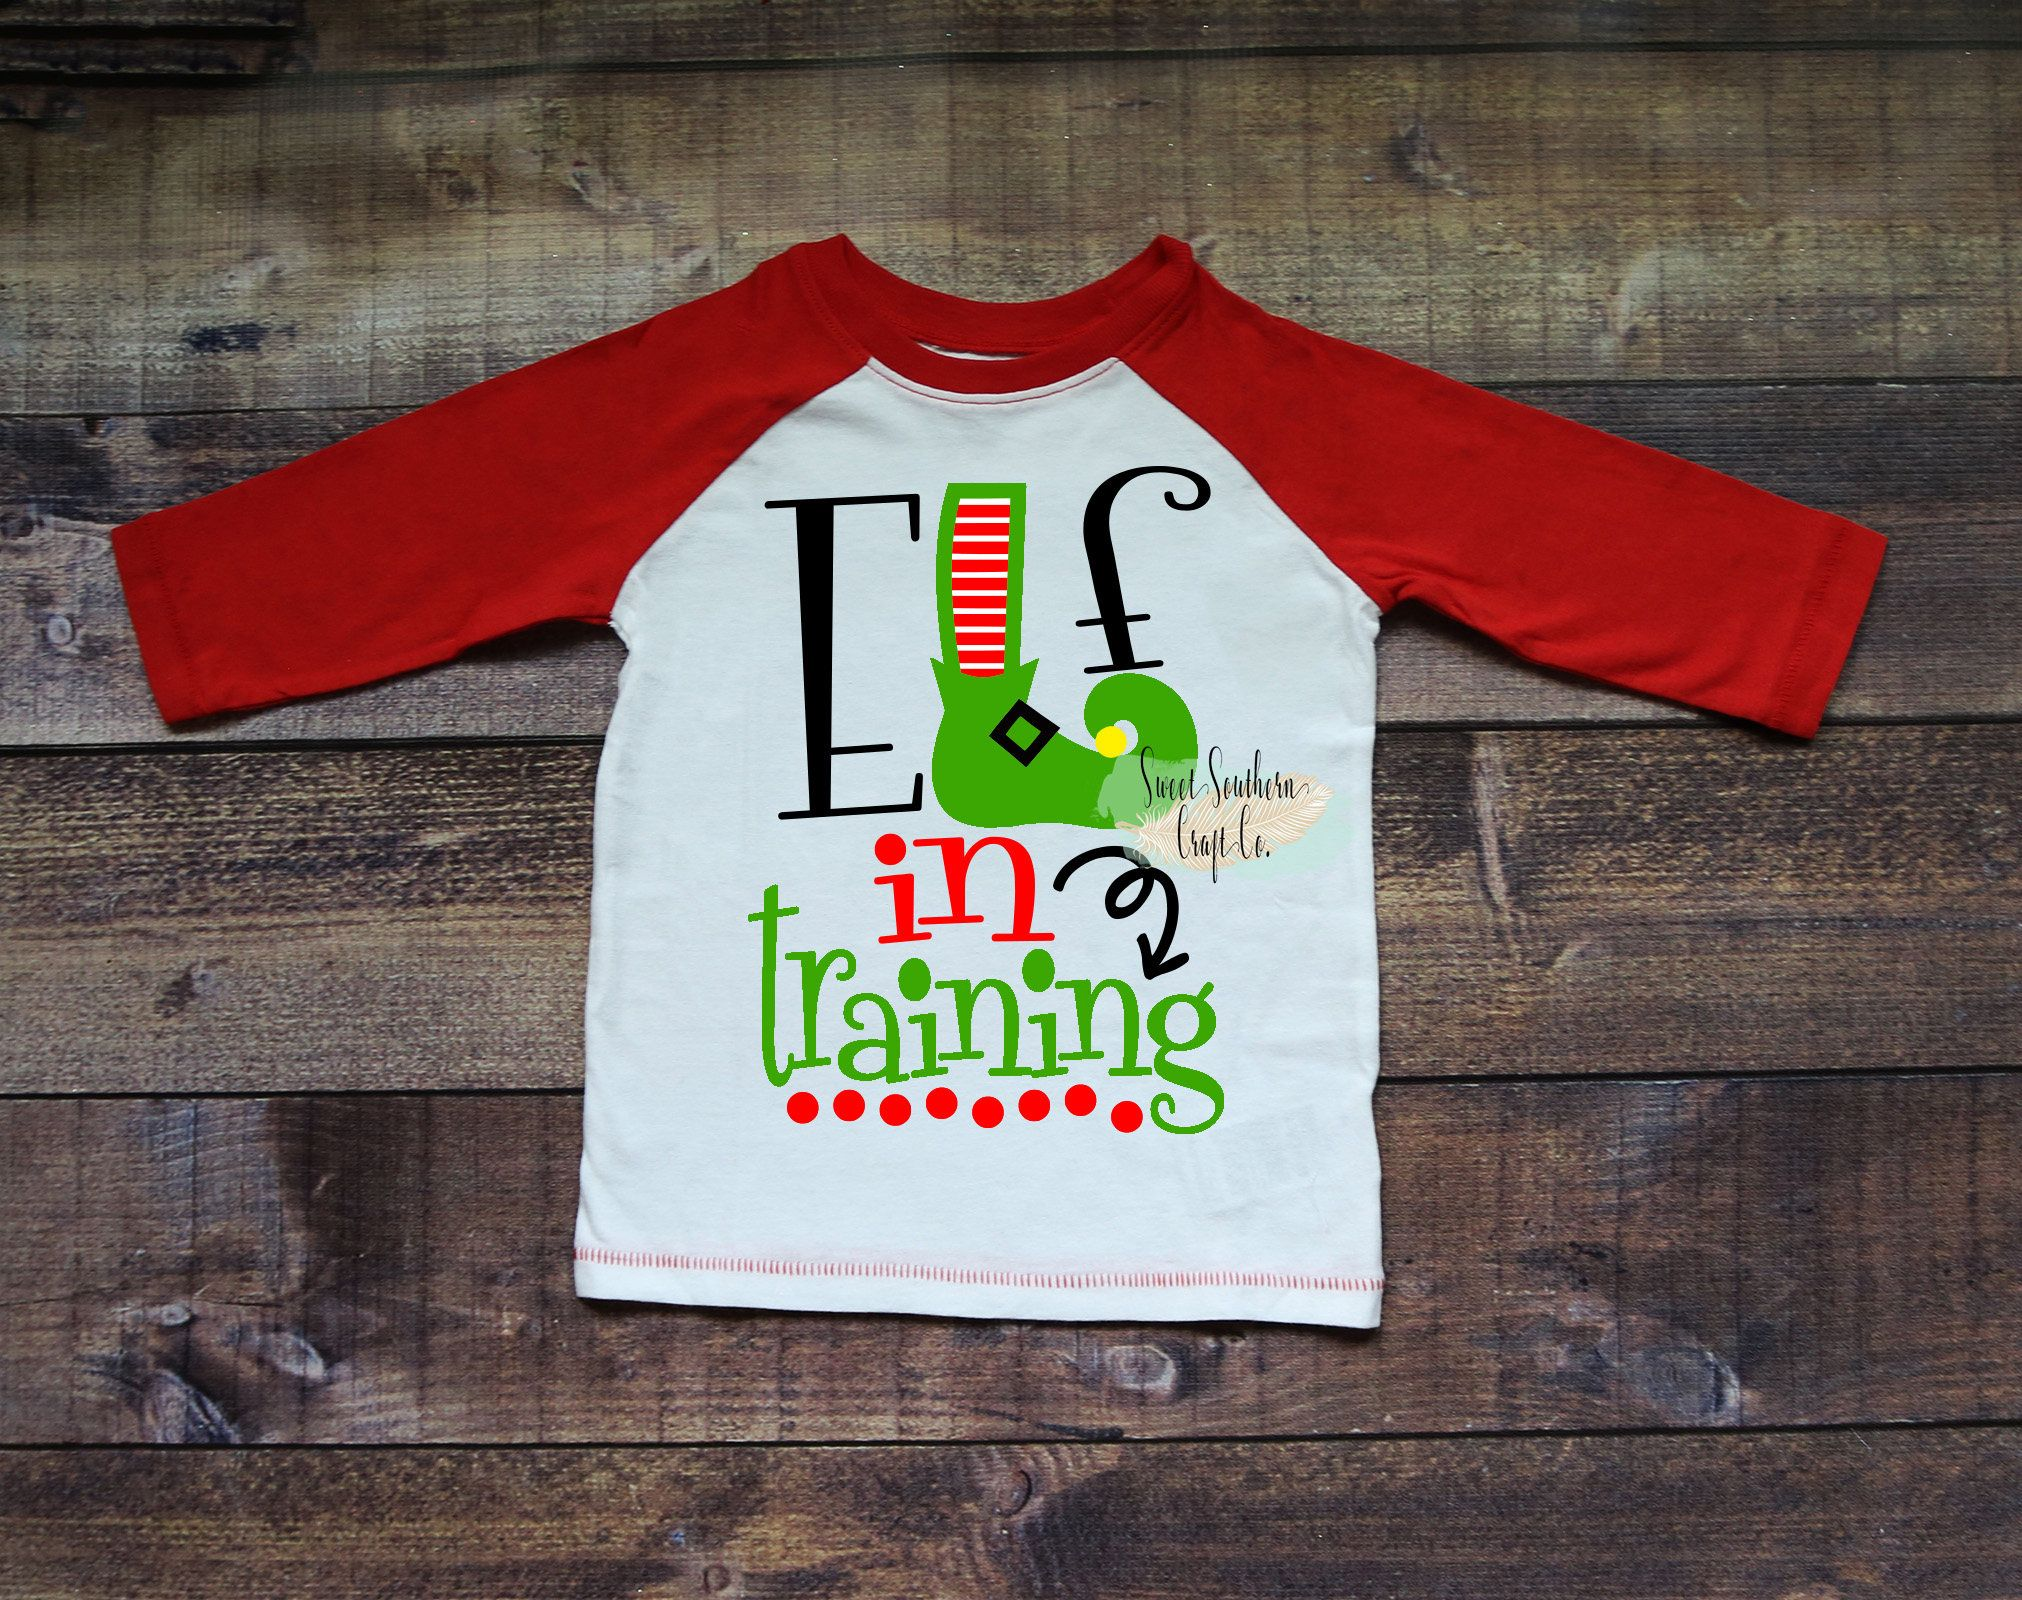 e77ae7c79 FREE SHIPPING**Elf In Training Kids Christmas Raglan,Christmas Shirt,Matching  Shirts,Holiday Shirt,Baseball Raglan,Elf Shirt,Christmas Party by ...